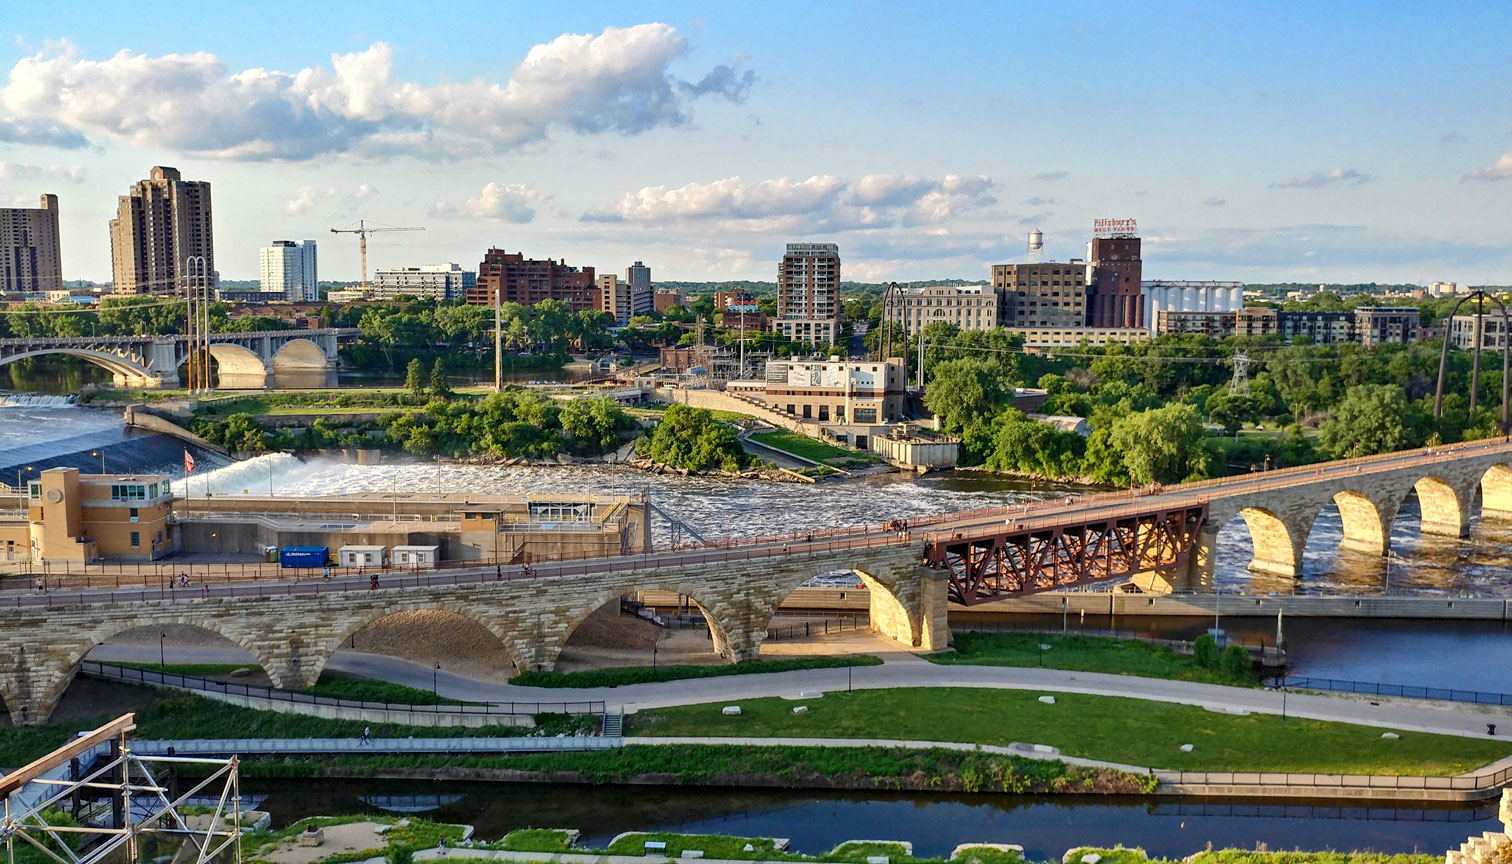 Skyline view of the Stone Arch Bridge in Minneapolis, MN, crossing over the Mississippi River.